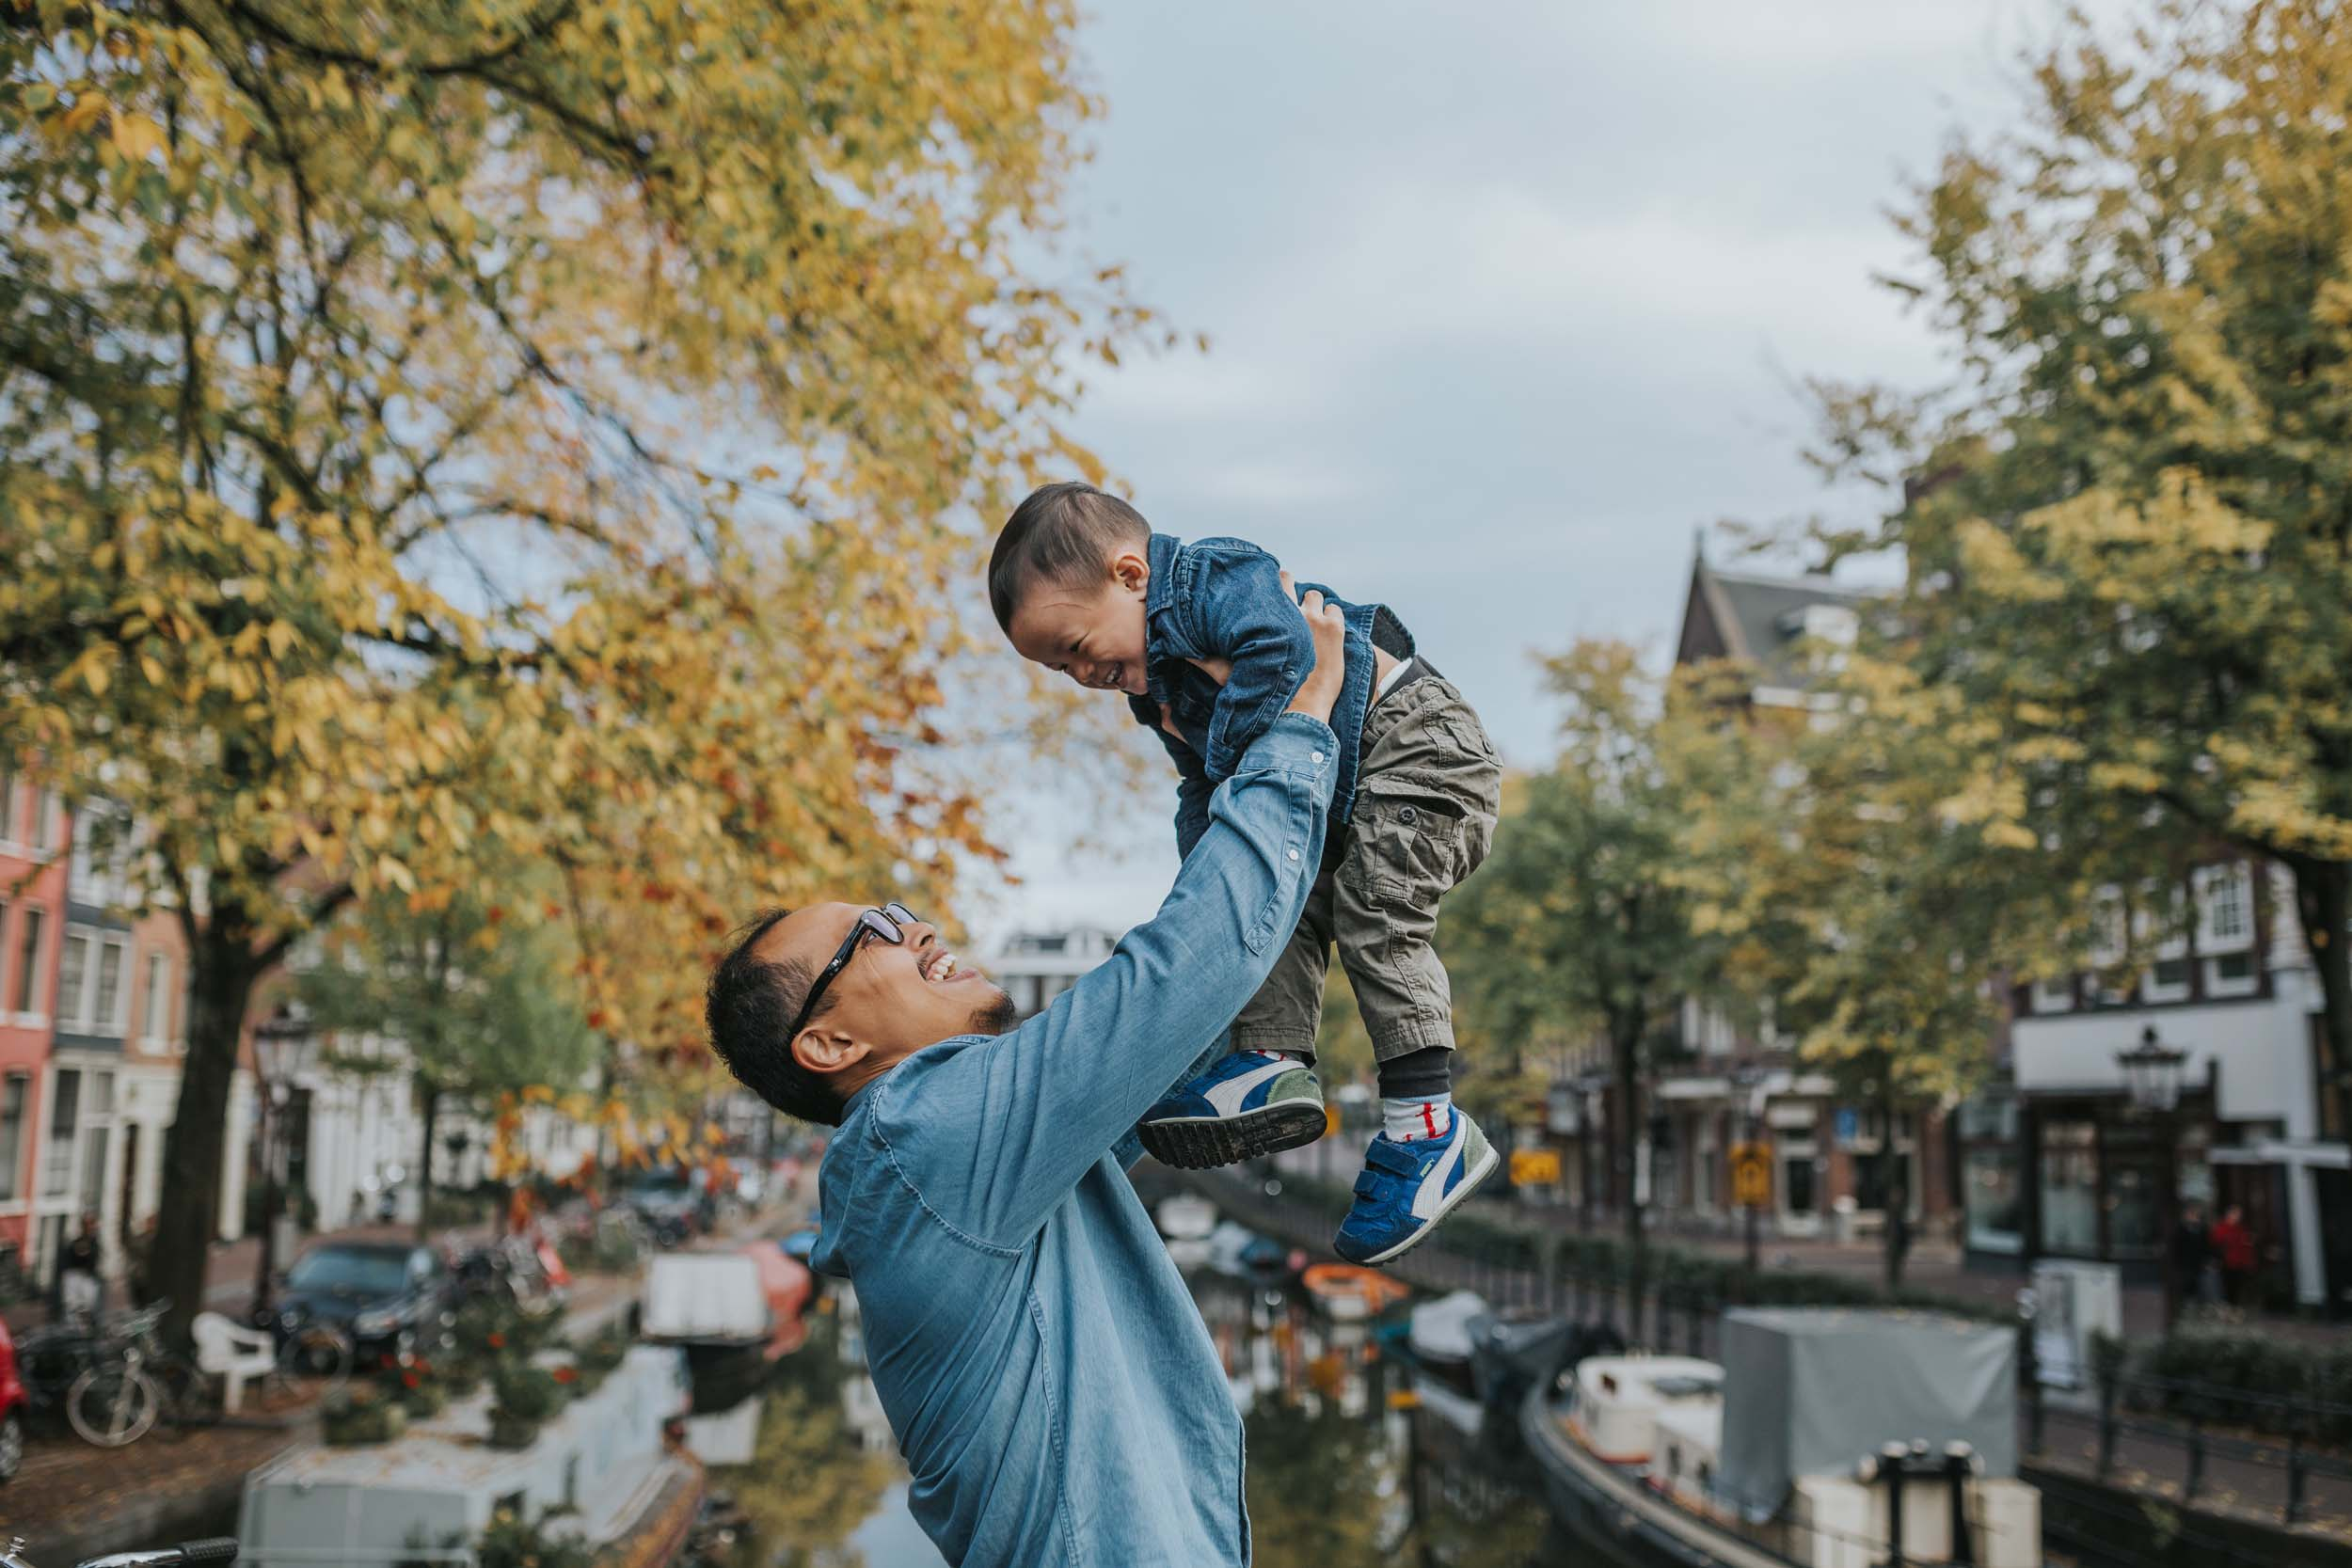 The Halim family in  Amsterdam    Flytographer Silvia